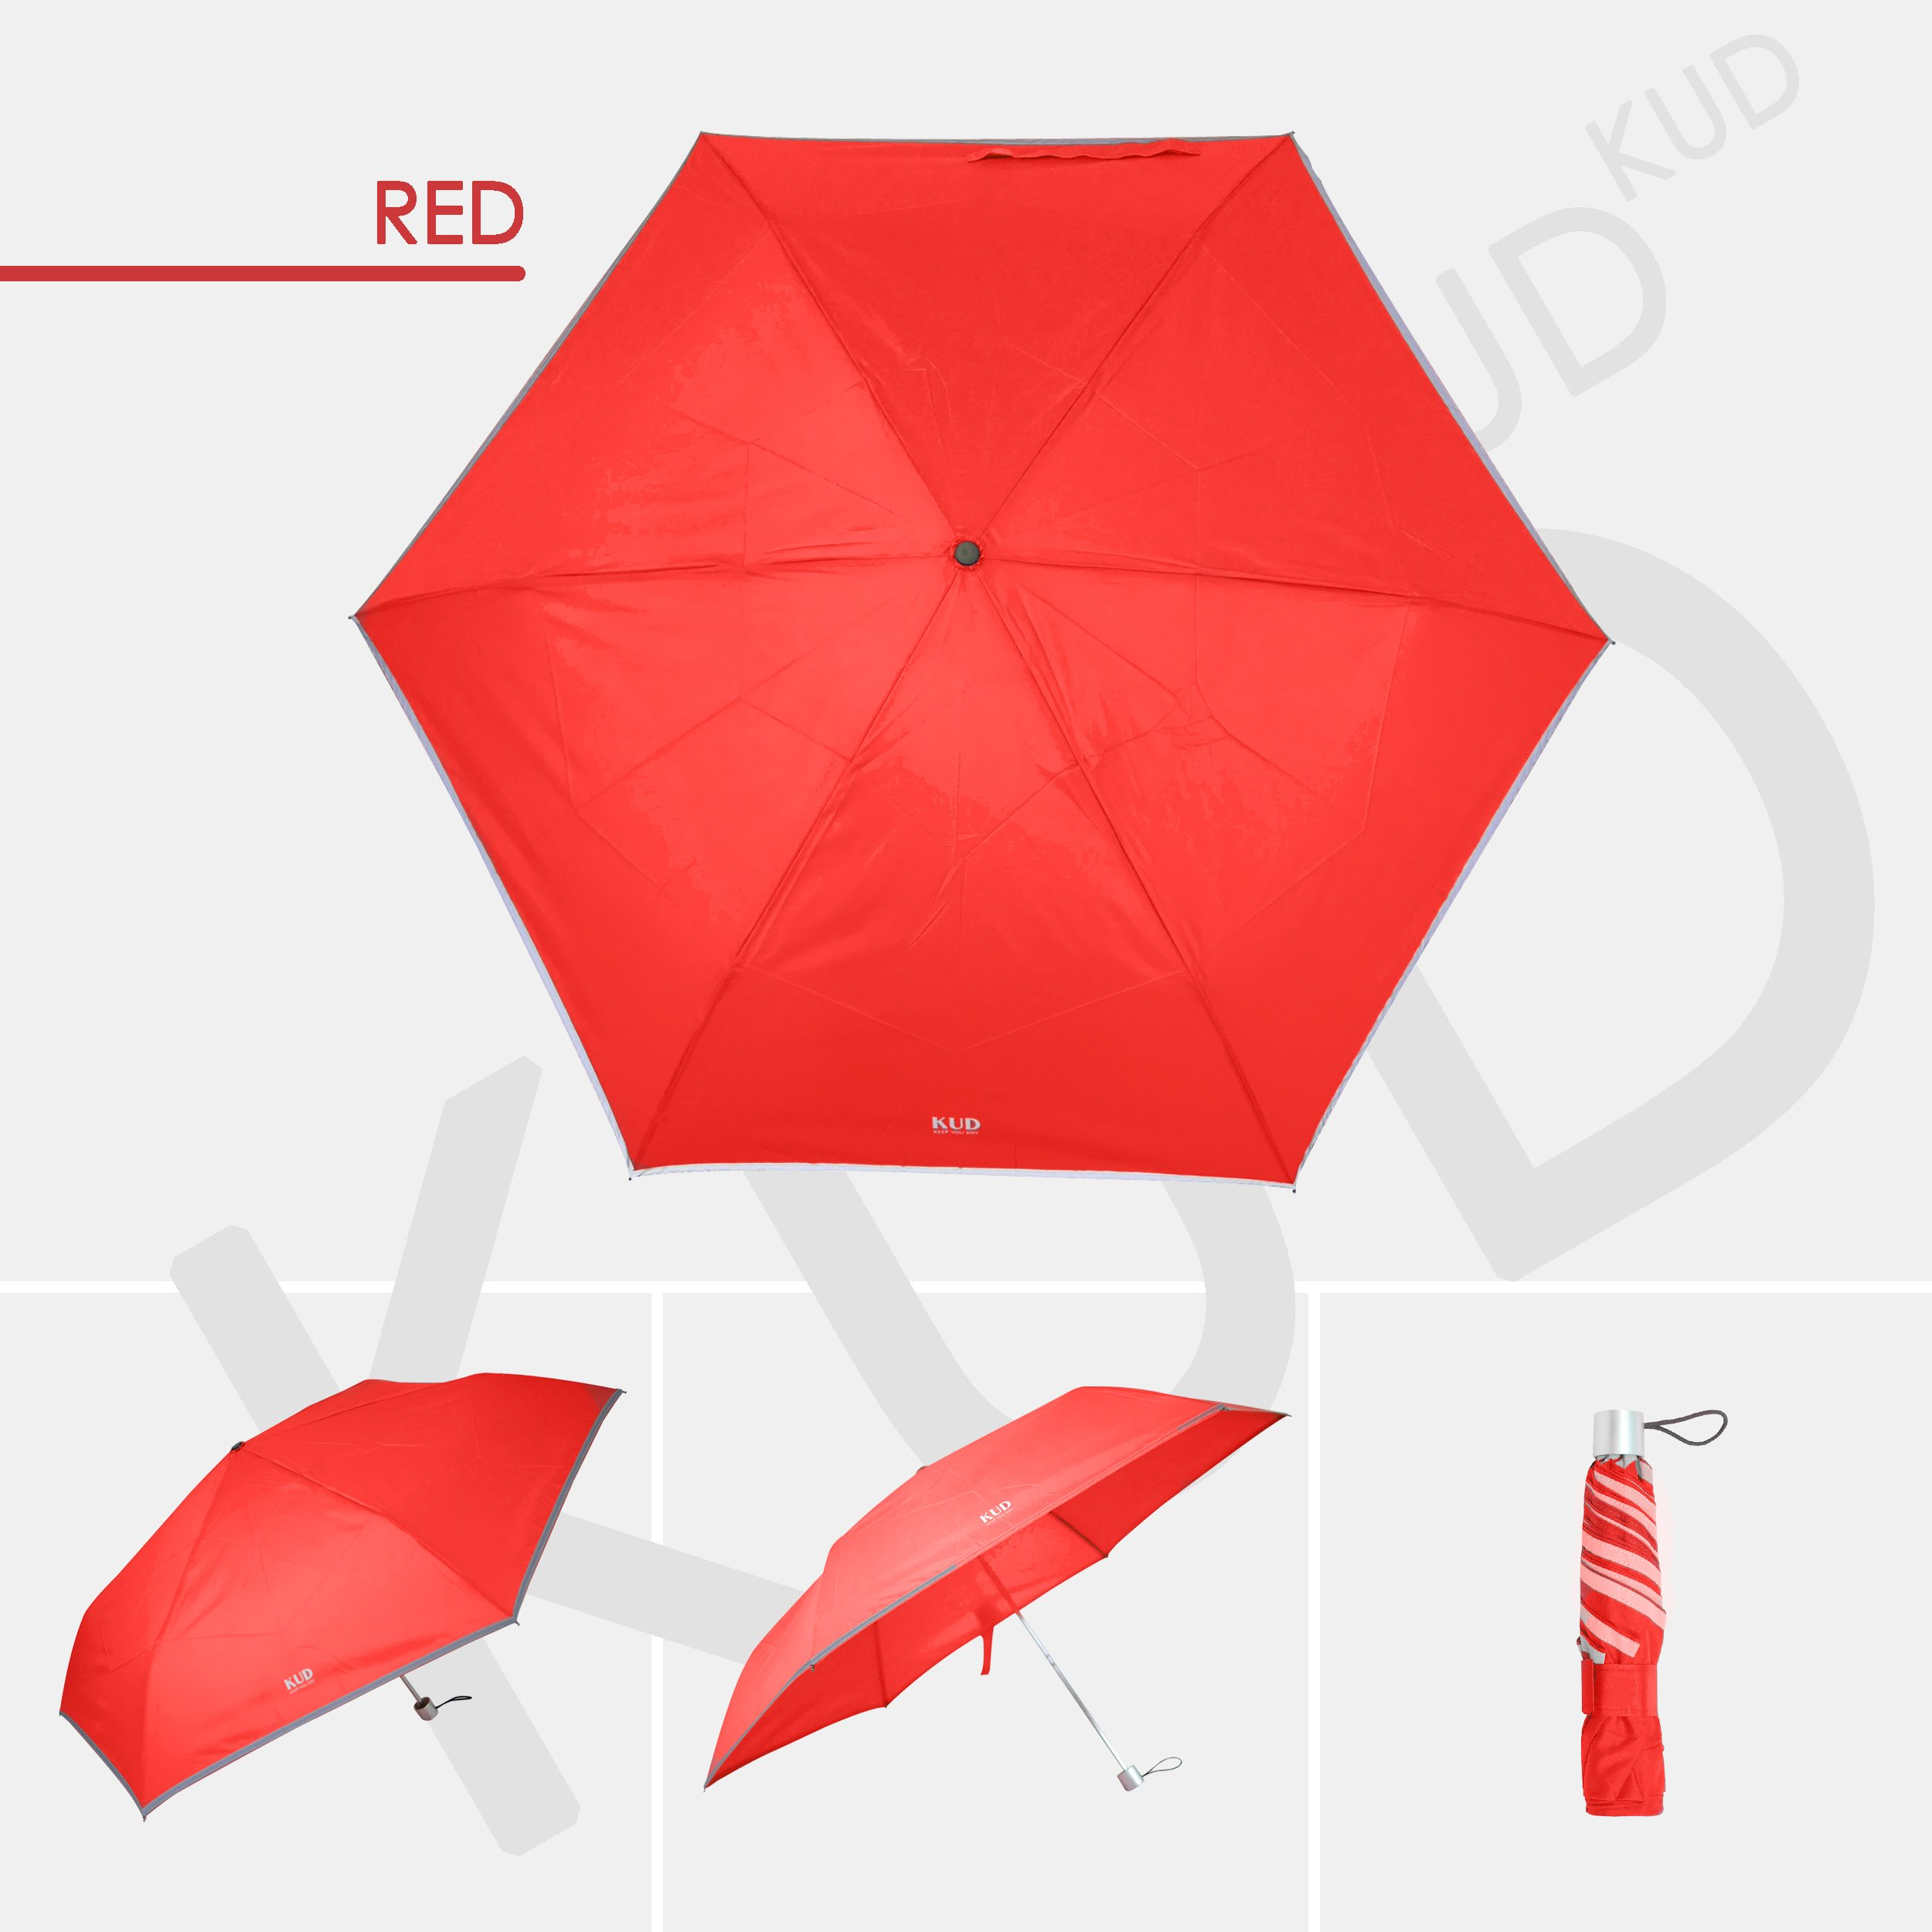 KUD Lightweight Compact travel umbrella with 50 inch Arc large coverage (Red) by Keep You Dry (Image #2)